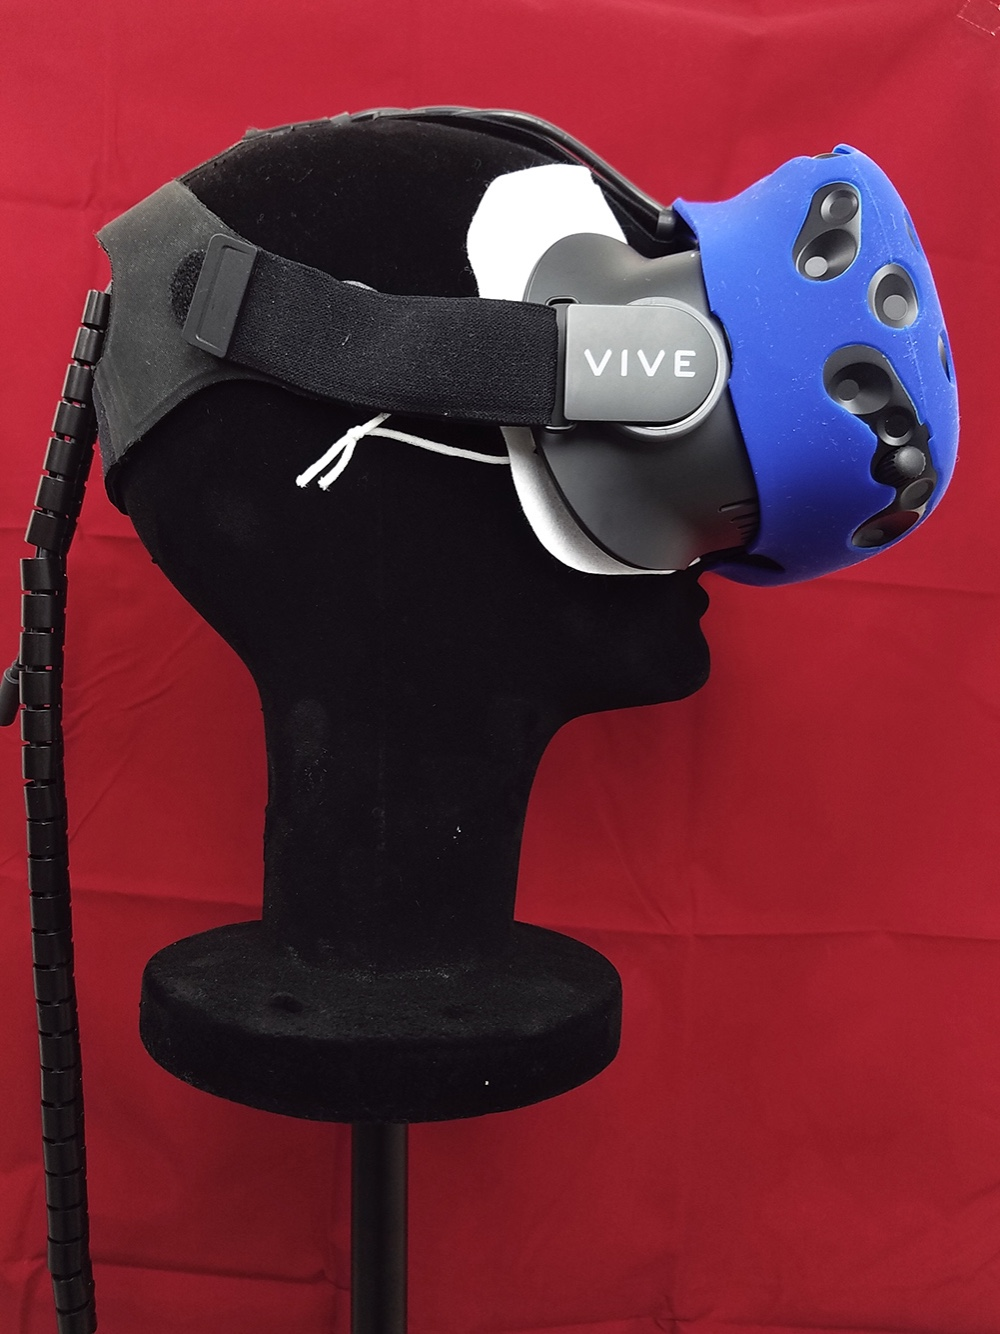 US $1272 05 |Wholesale! VR Pad Eye Cloth Mask For Htc Vive / Pro Headset  For Sony PS4 VR oculus Quest rift S For Samsung VR for xiaomi vr-in VR/AR